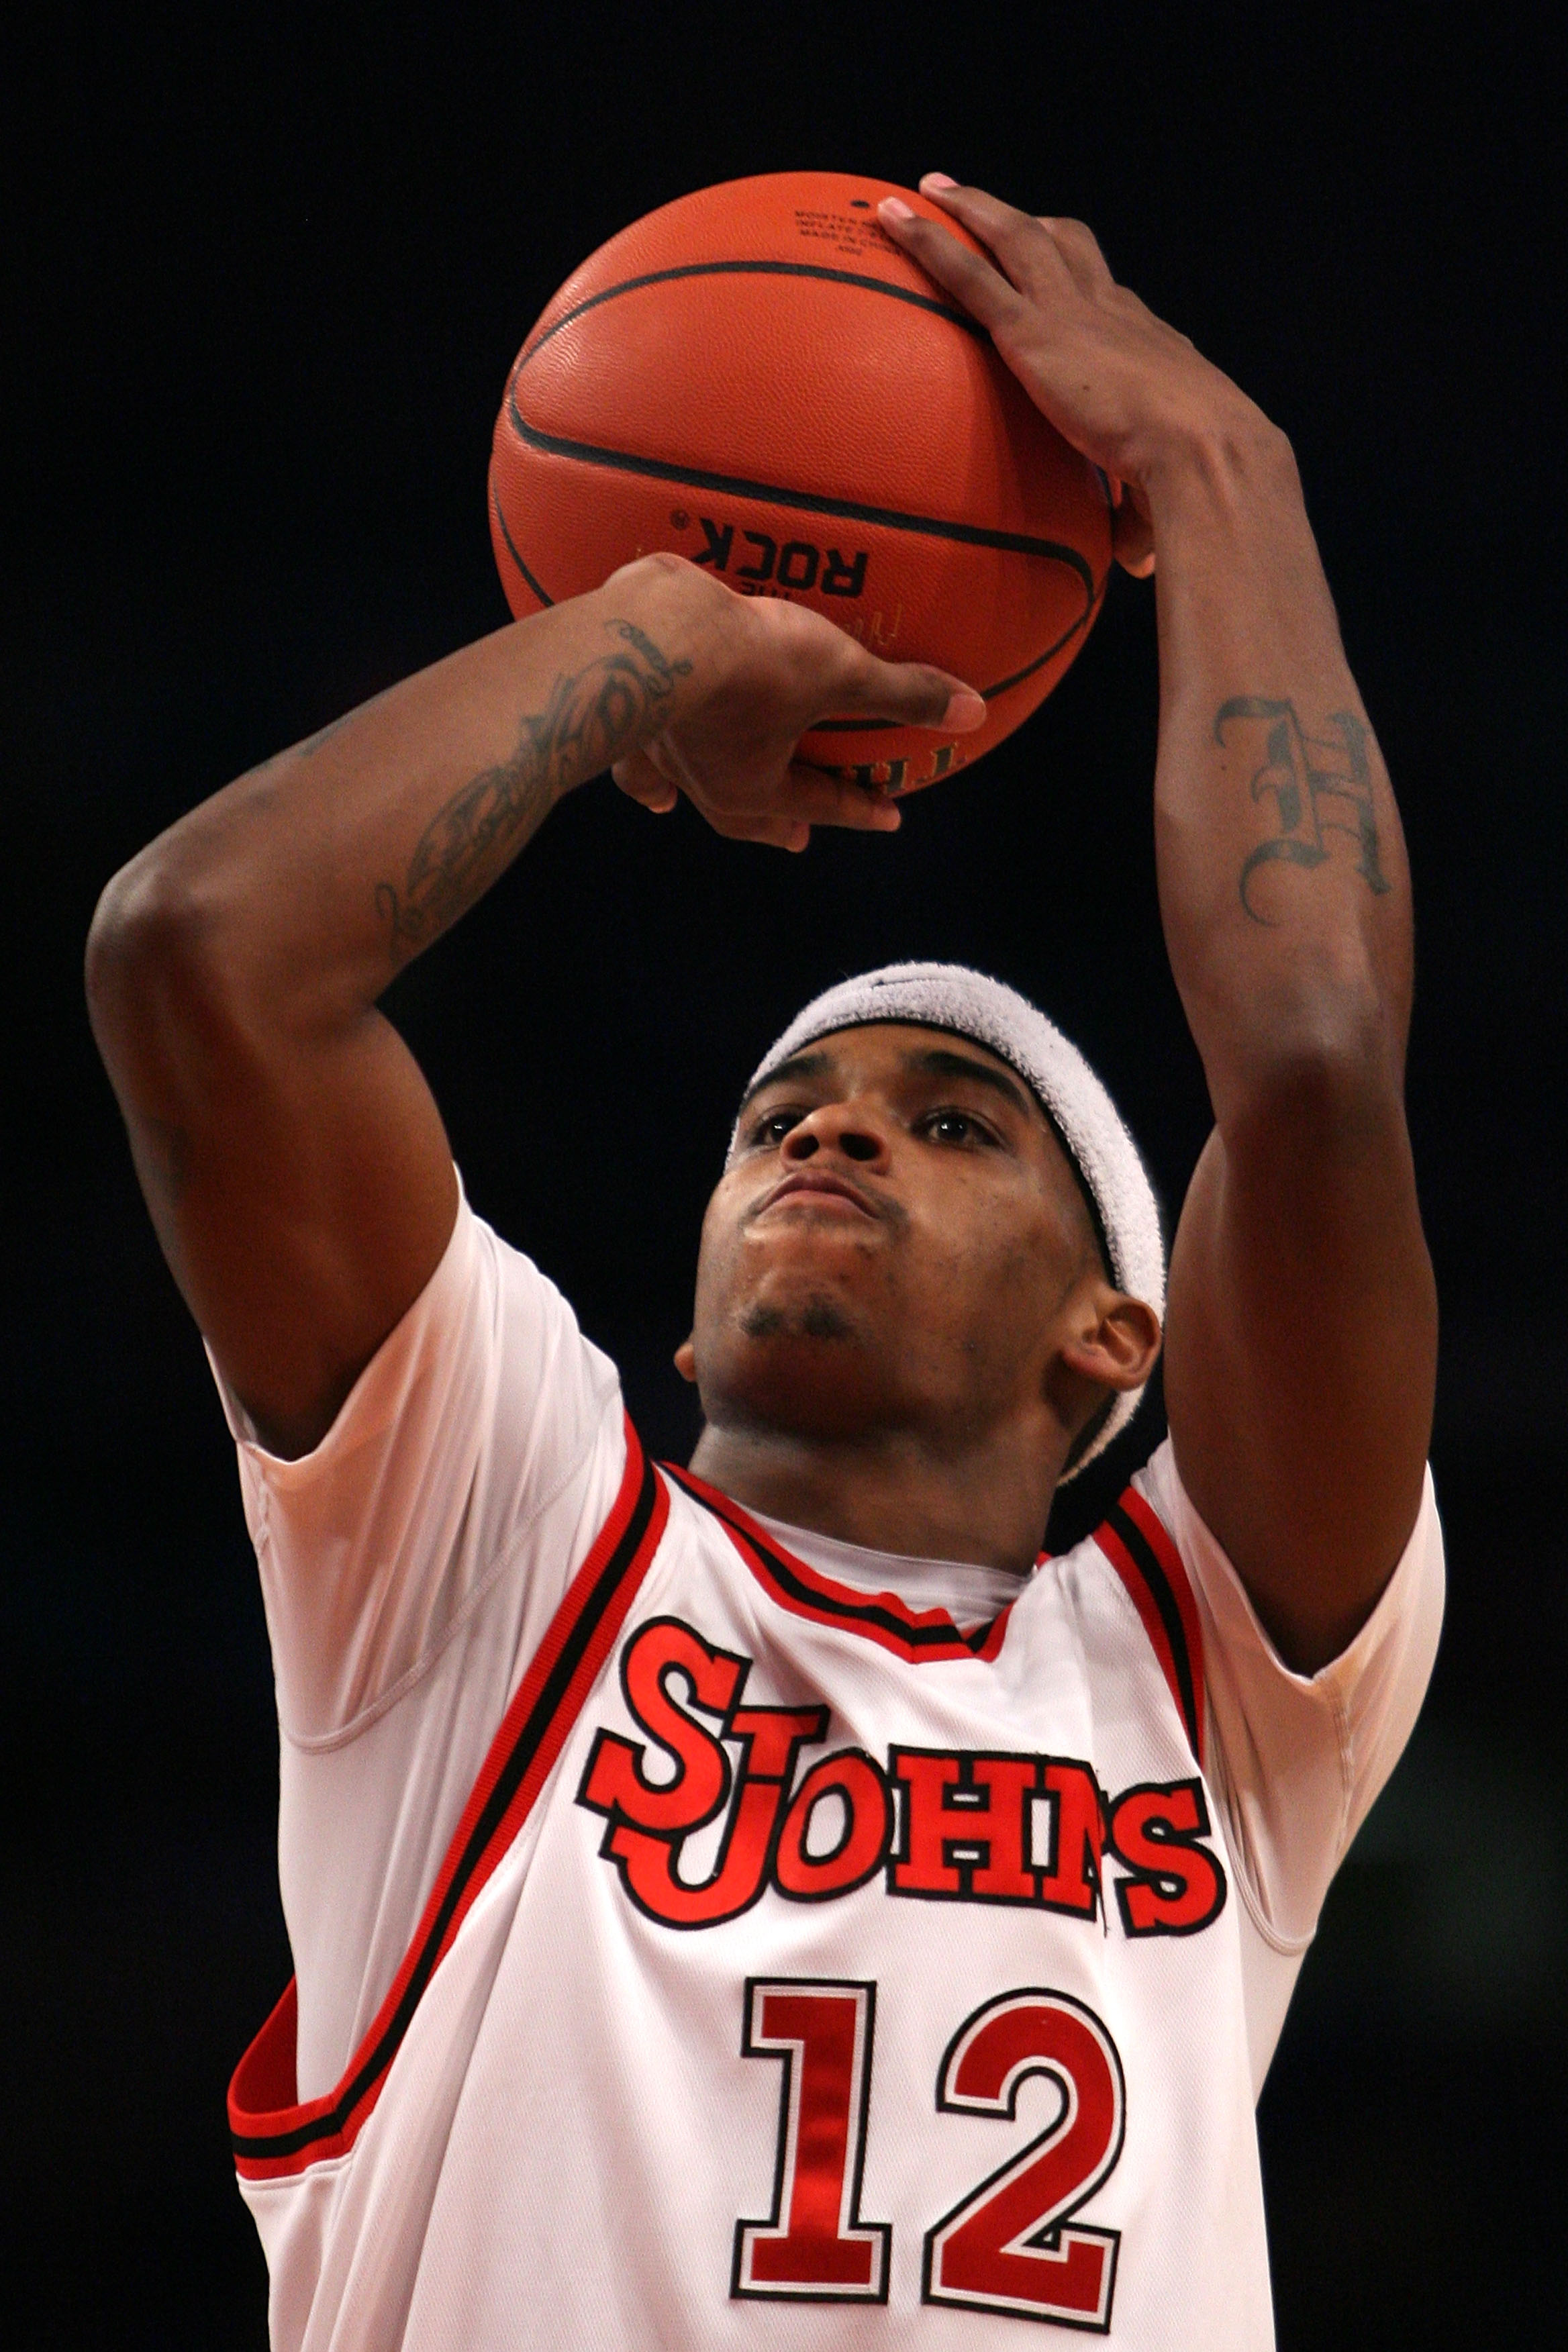 NEW YORK - DECEMBER 09: Dwight Hardy #12 of the St. John's Red Storm shoots a free throw against the Georgia Bulldogs during the SEC Big East Invitational at Madison Square Garden on December 9, 2009 in New York, New York. The Red Storm defeated the Bulld